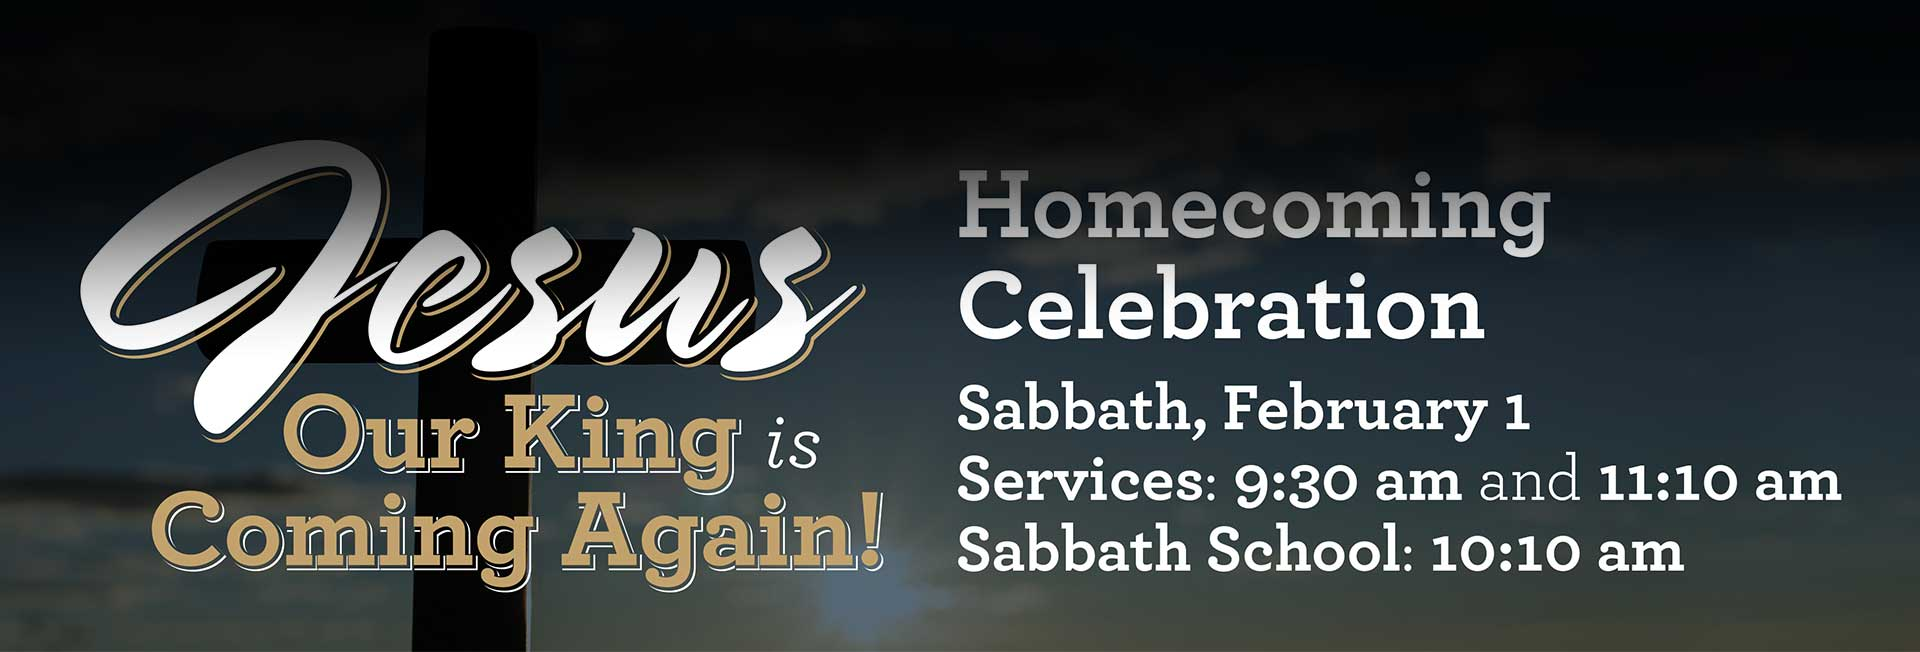 Jesus our King is Coming Again - Homecoming Celebration - Feb 1